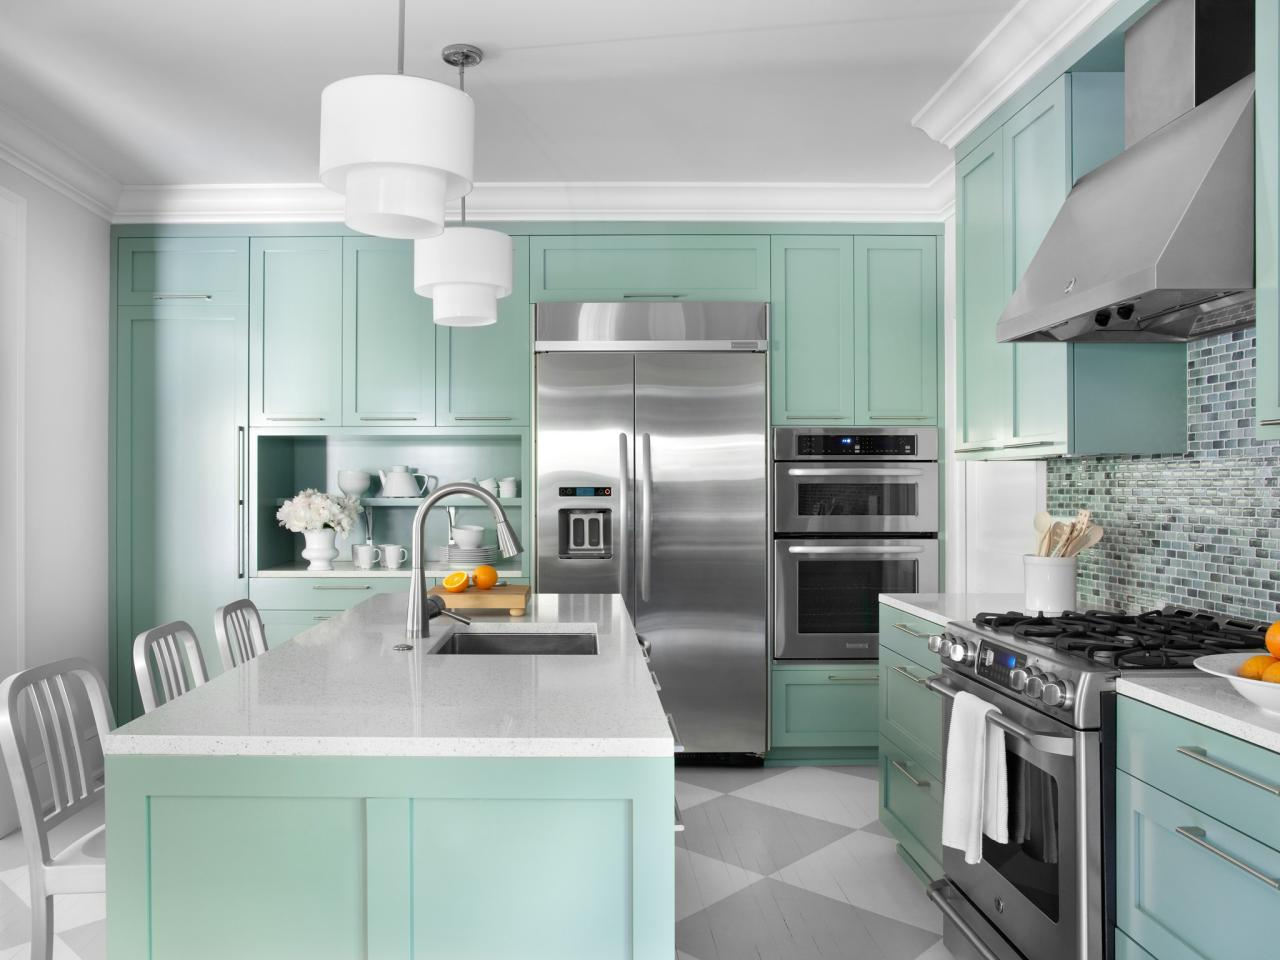 Kitchen Color Idea color ideas for painting kitchen cabinets + hgtv pictures | hgtv